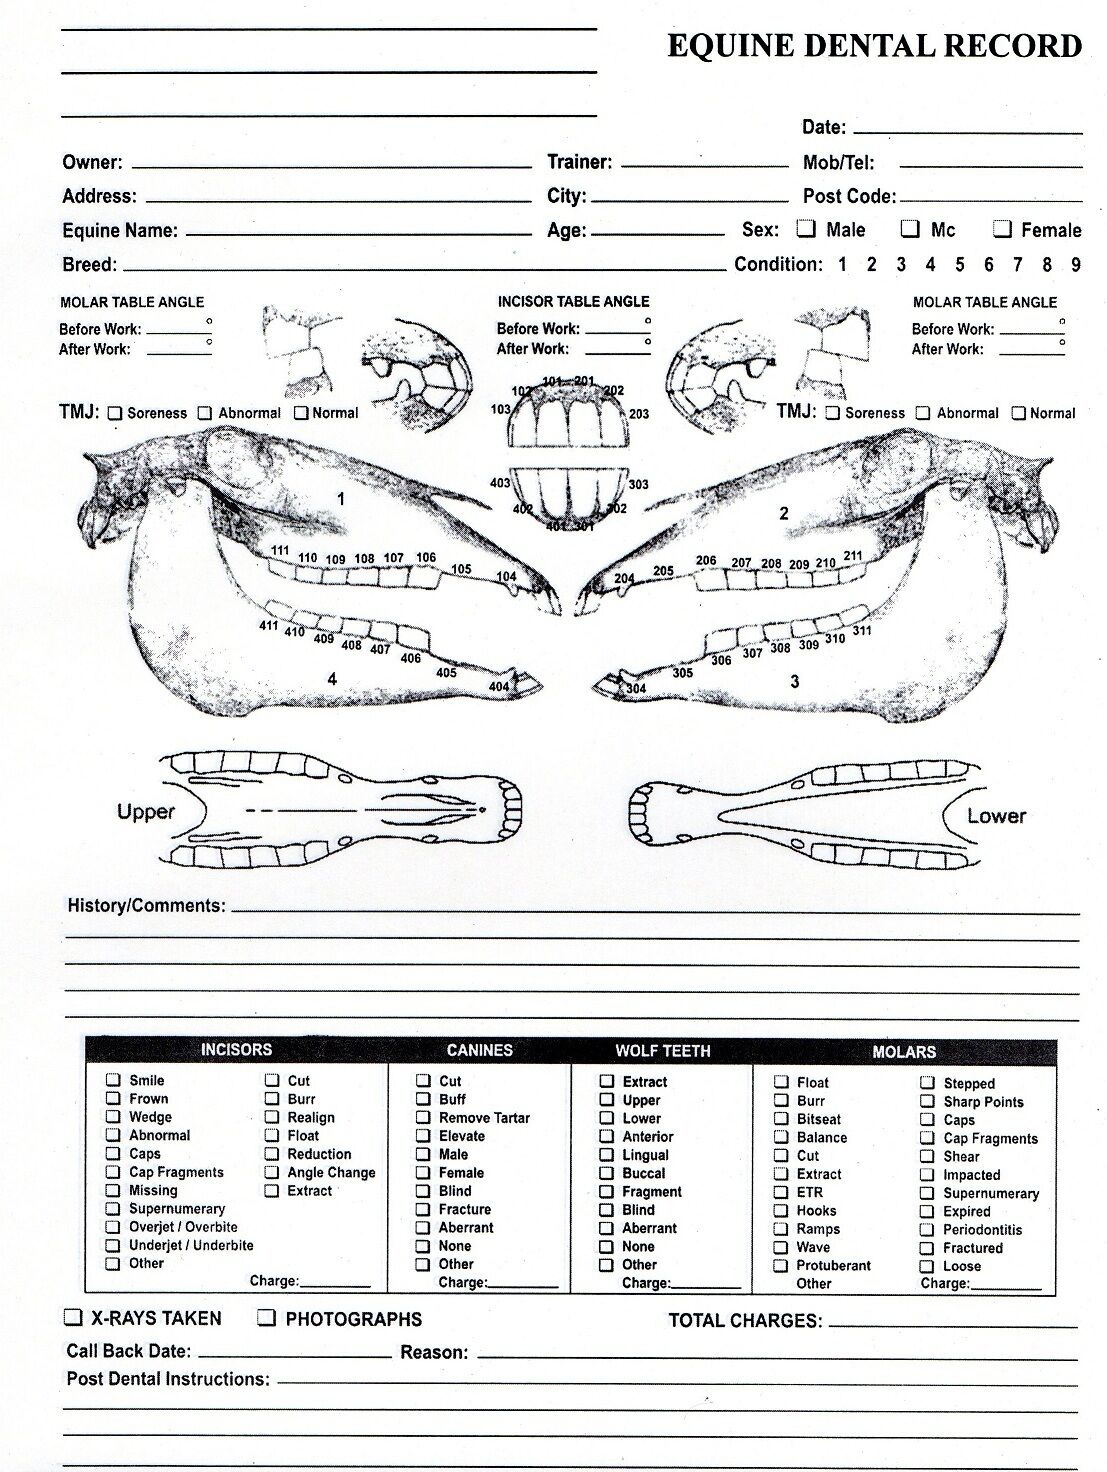 Equine Dental Chart For Equine Dentistry And Veterinary